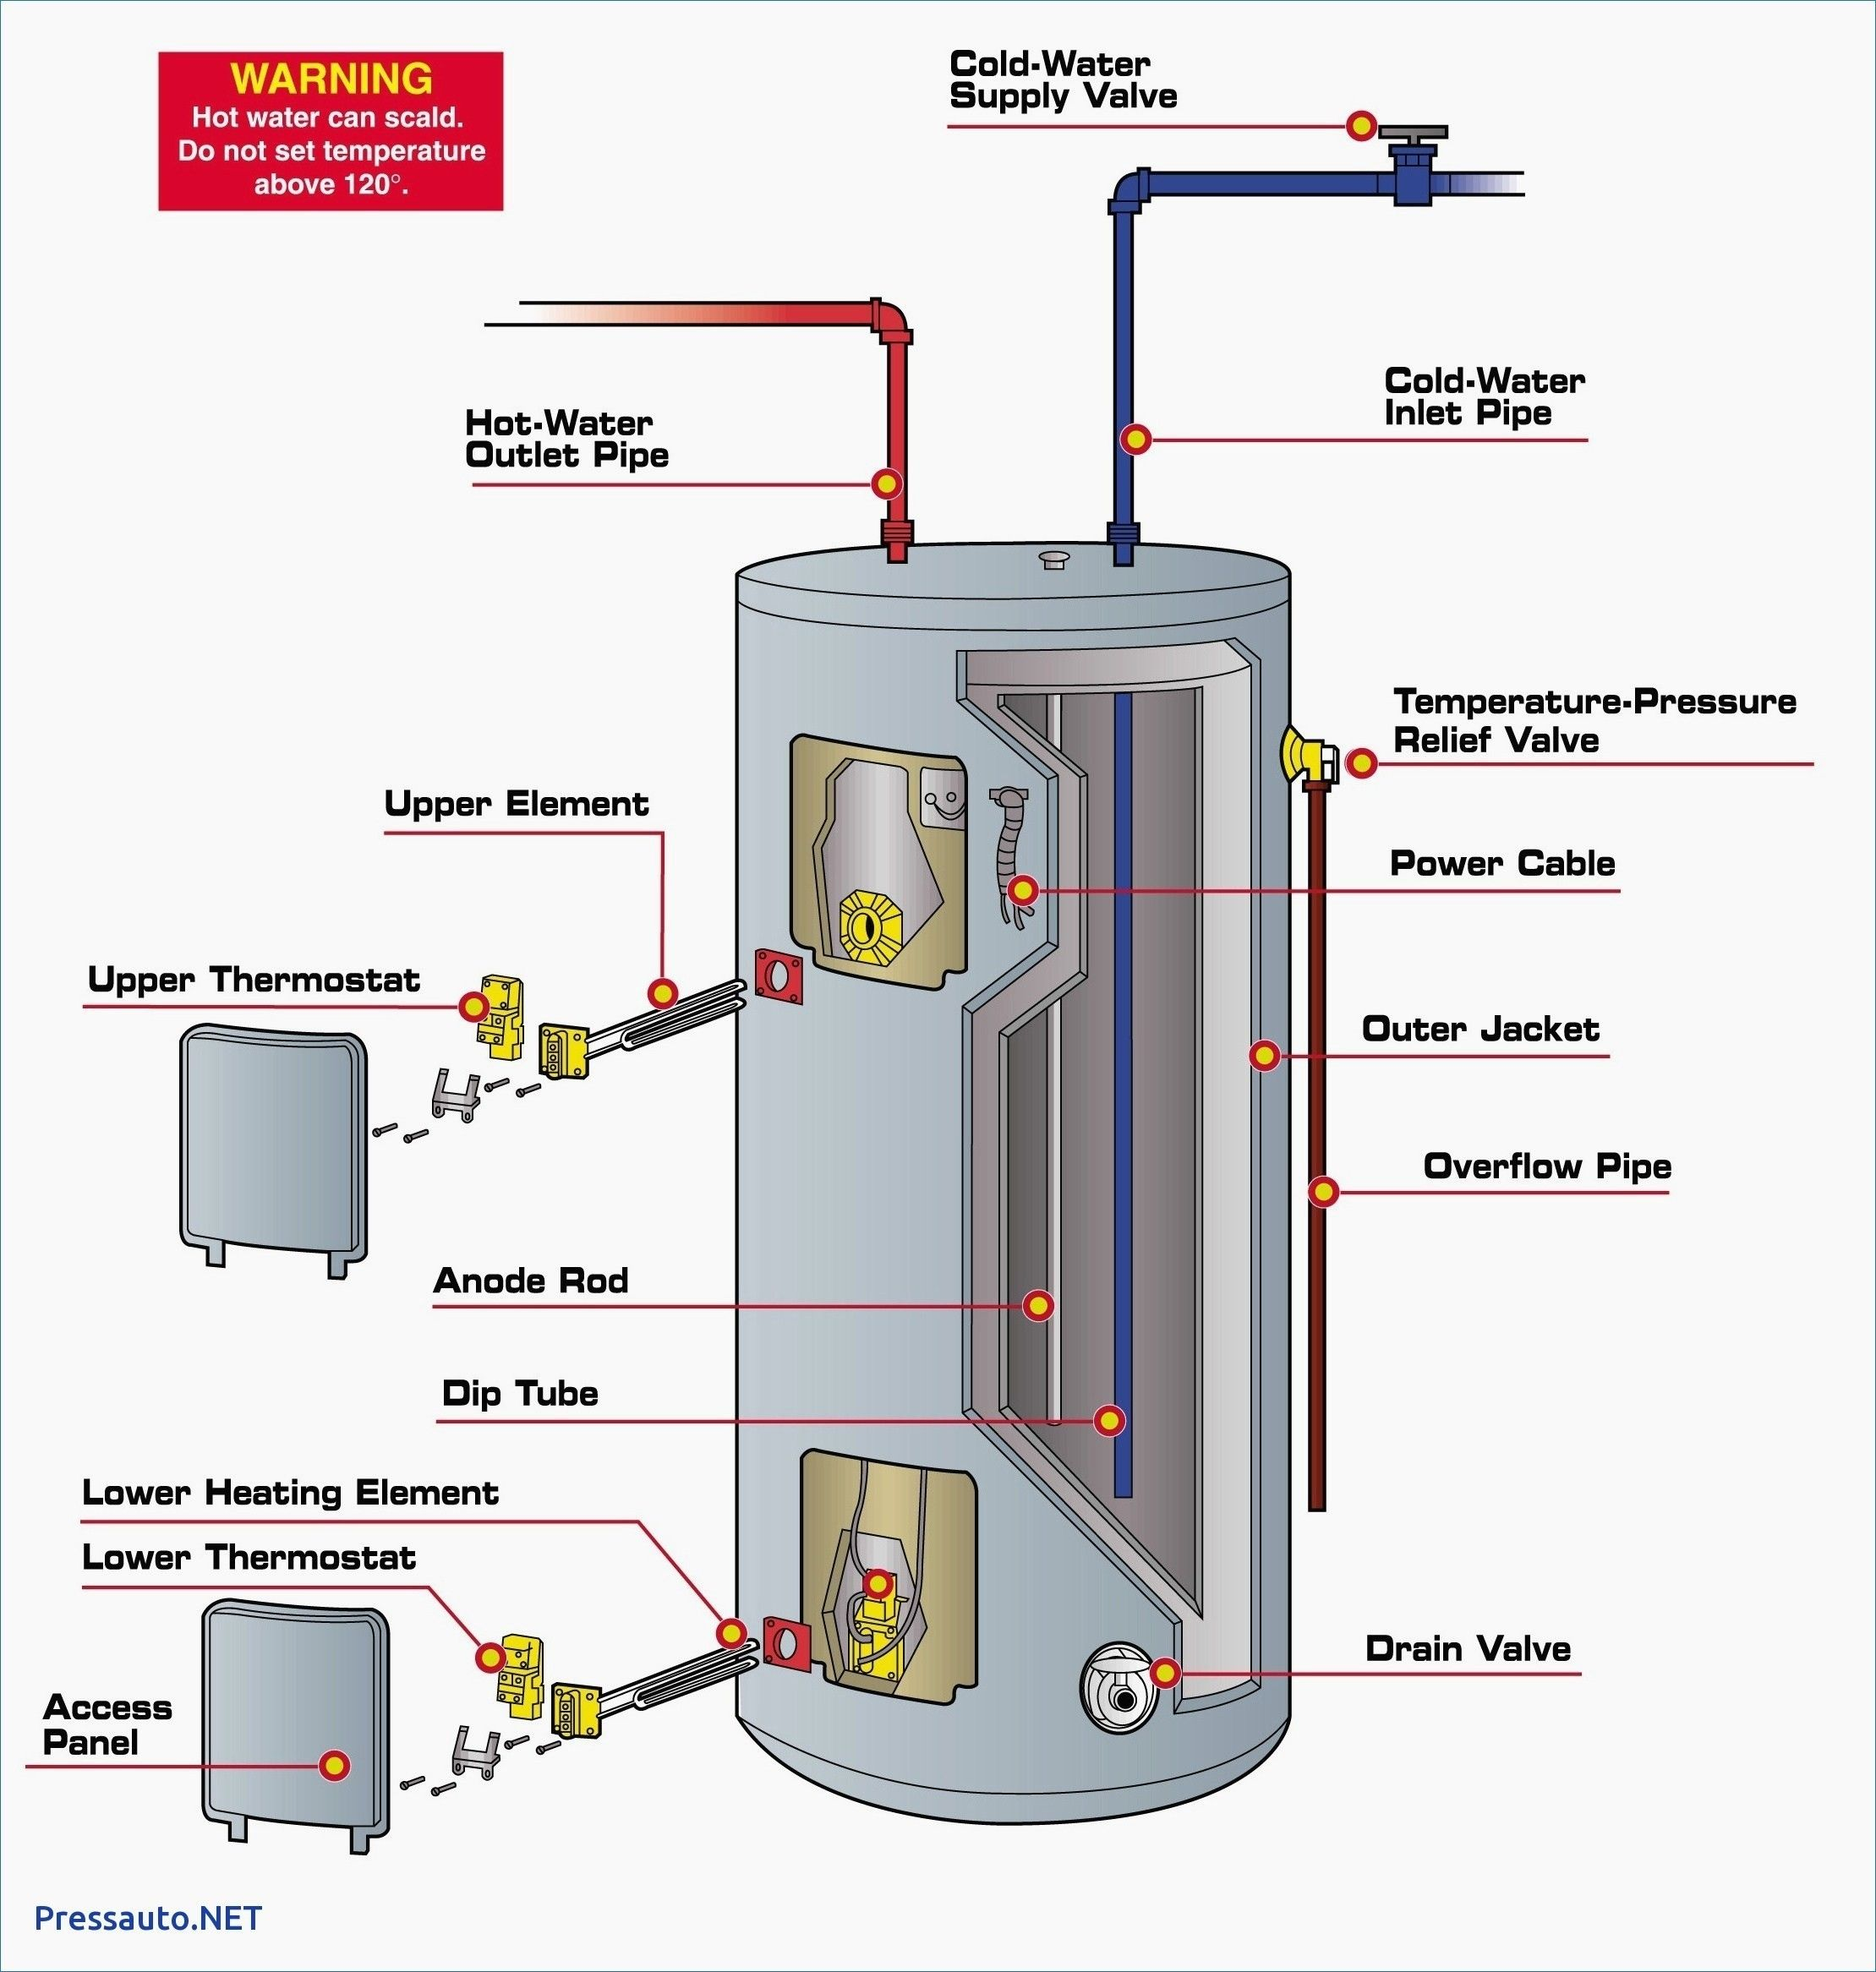 Wiring Diagram For Rheem Hot Water Heater from i.pinimg.com